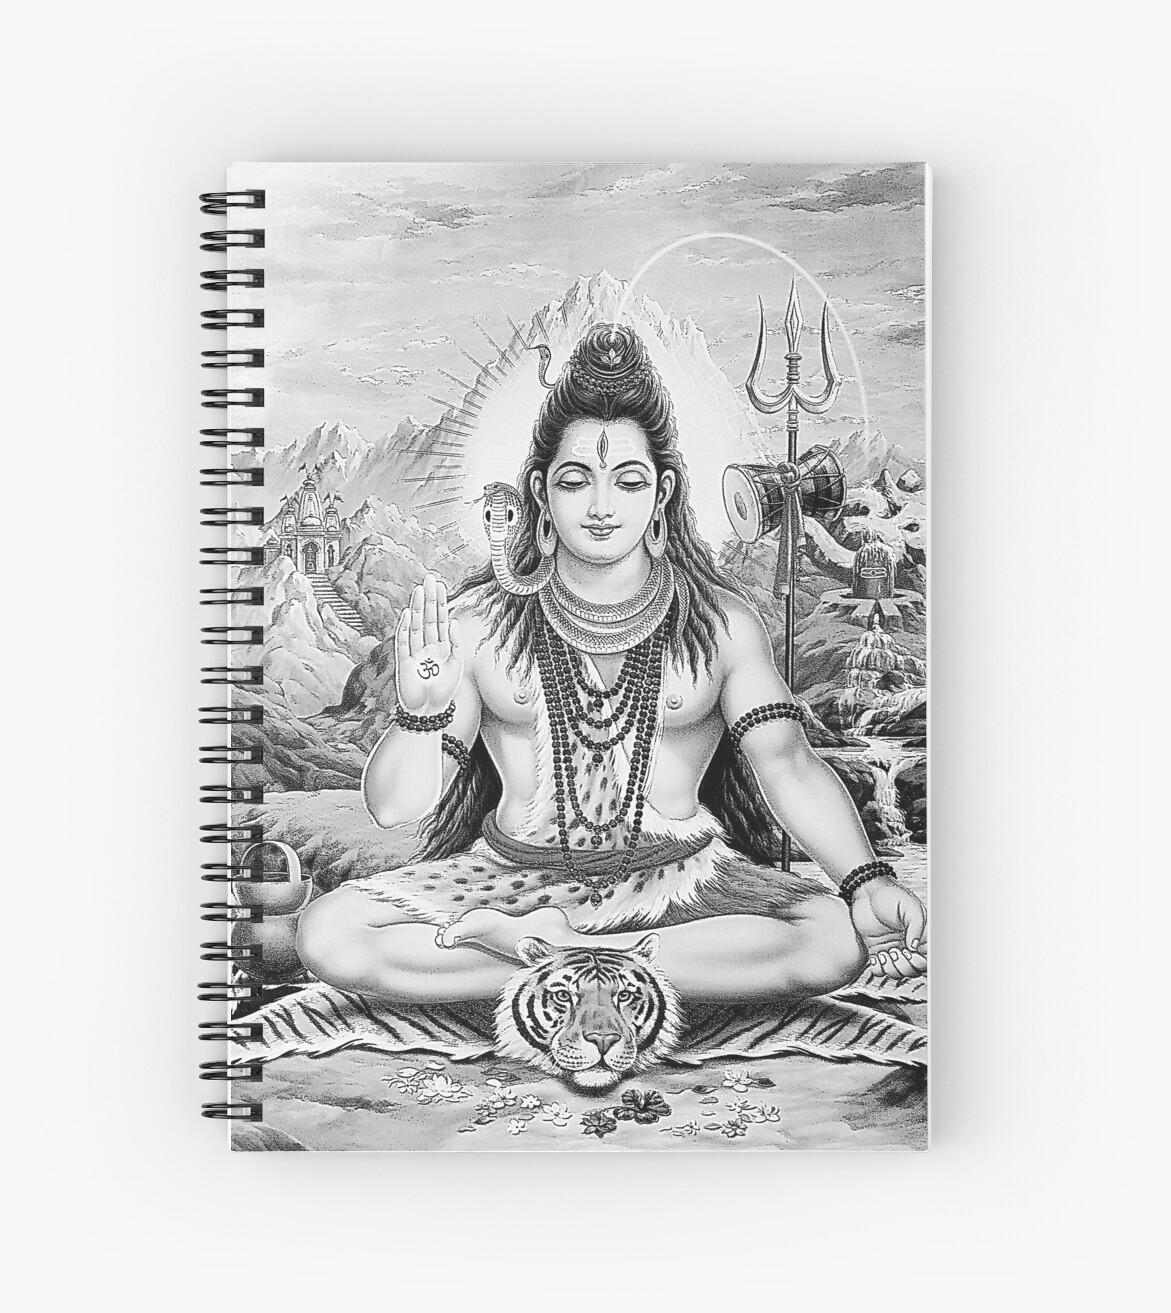 Lord Shiva Monochrome Sketch Spiral Notebook By Ianearthcore